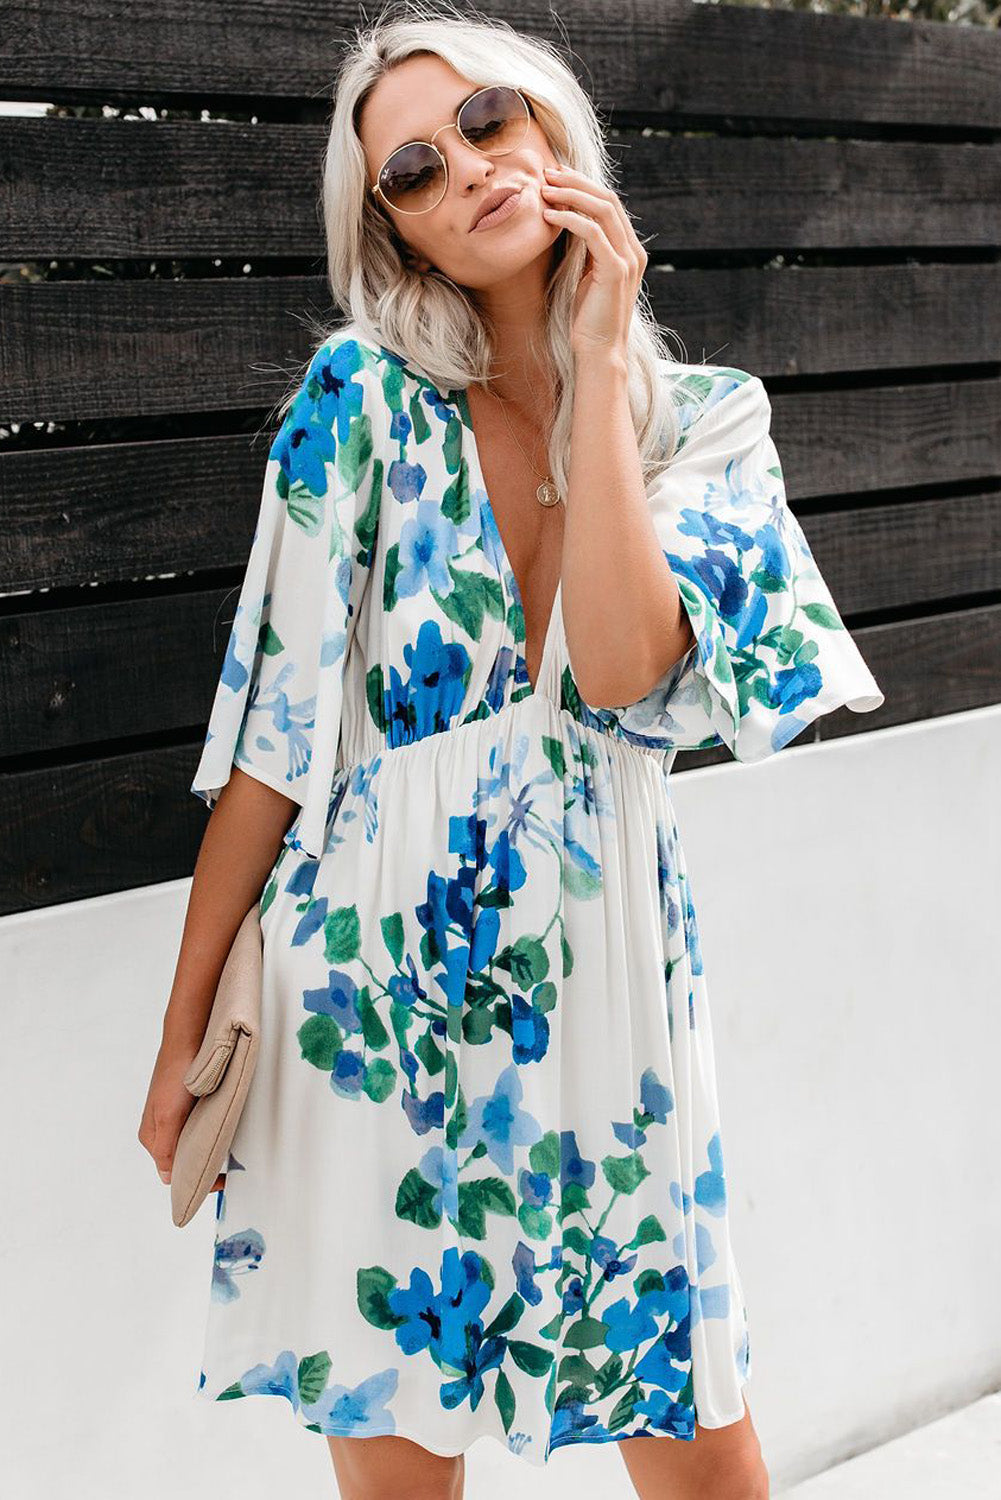 Sky Blue Hawaiian Babydoll Floral Dress